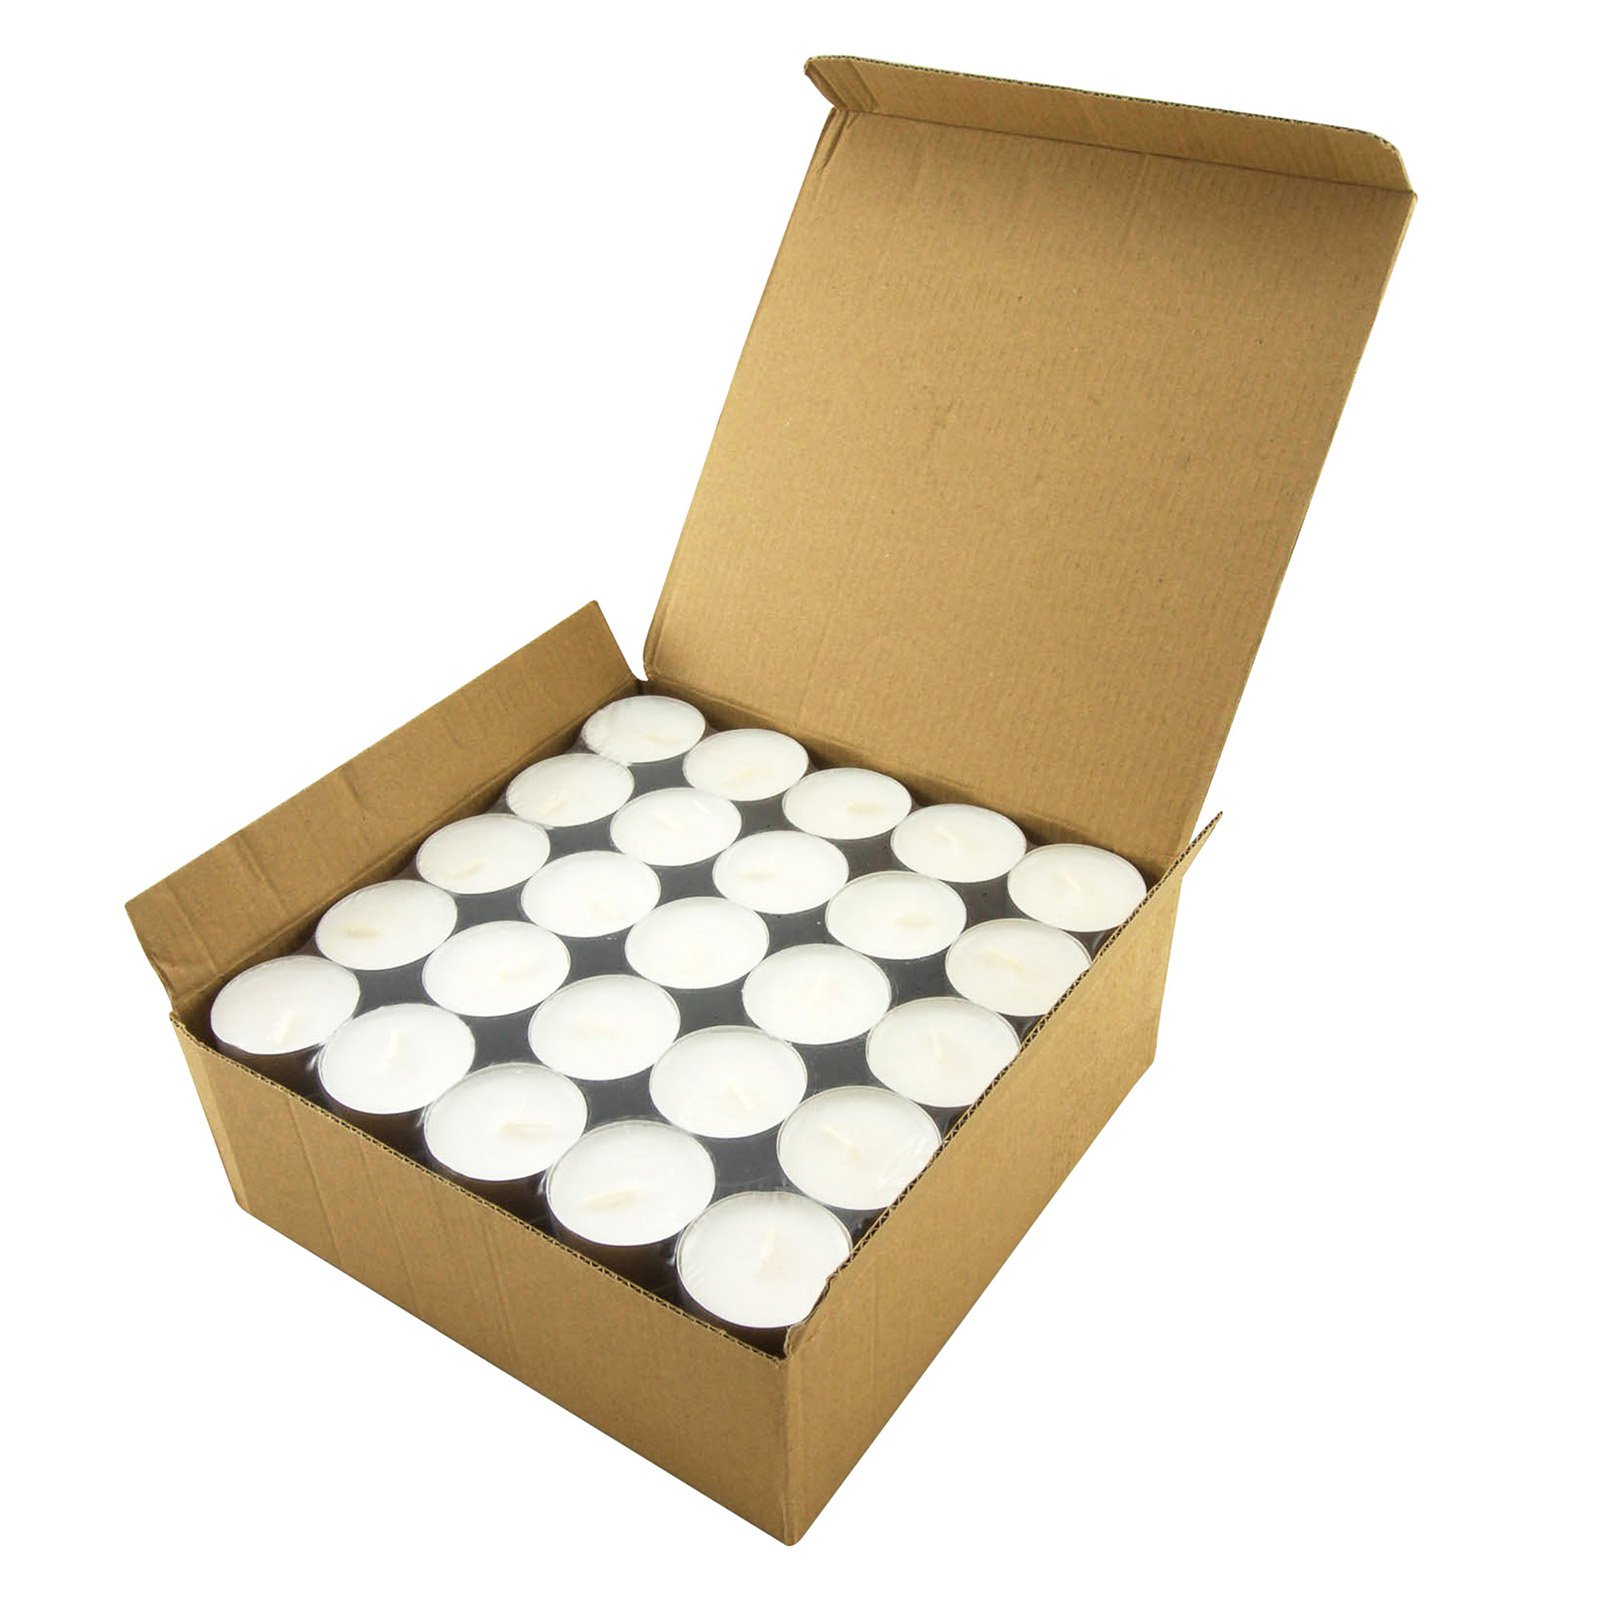 Tea Light Candles 6-7 Hour, Pack of 100